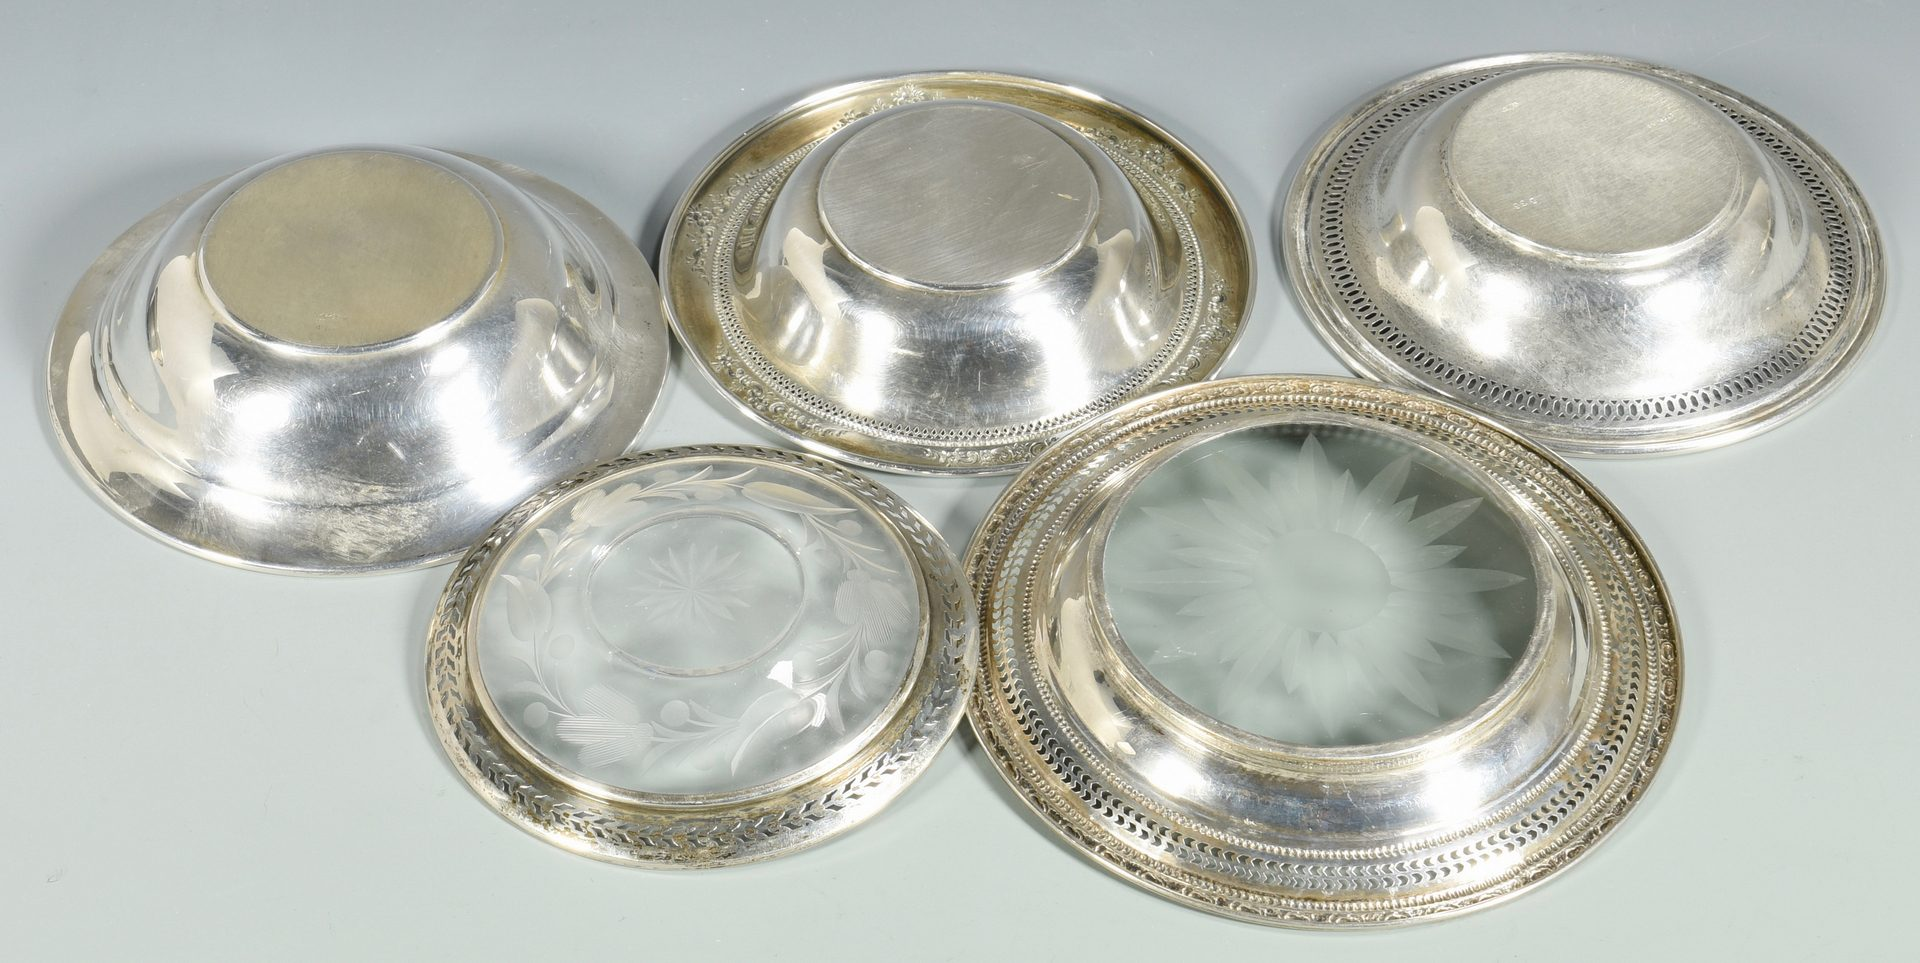 Lot 153: 12 Assorted Sterling Silver Holloware Items